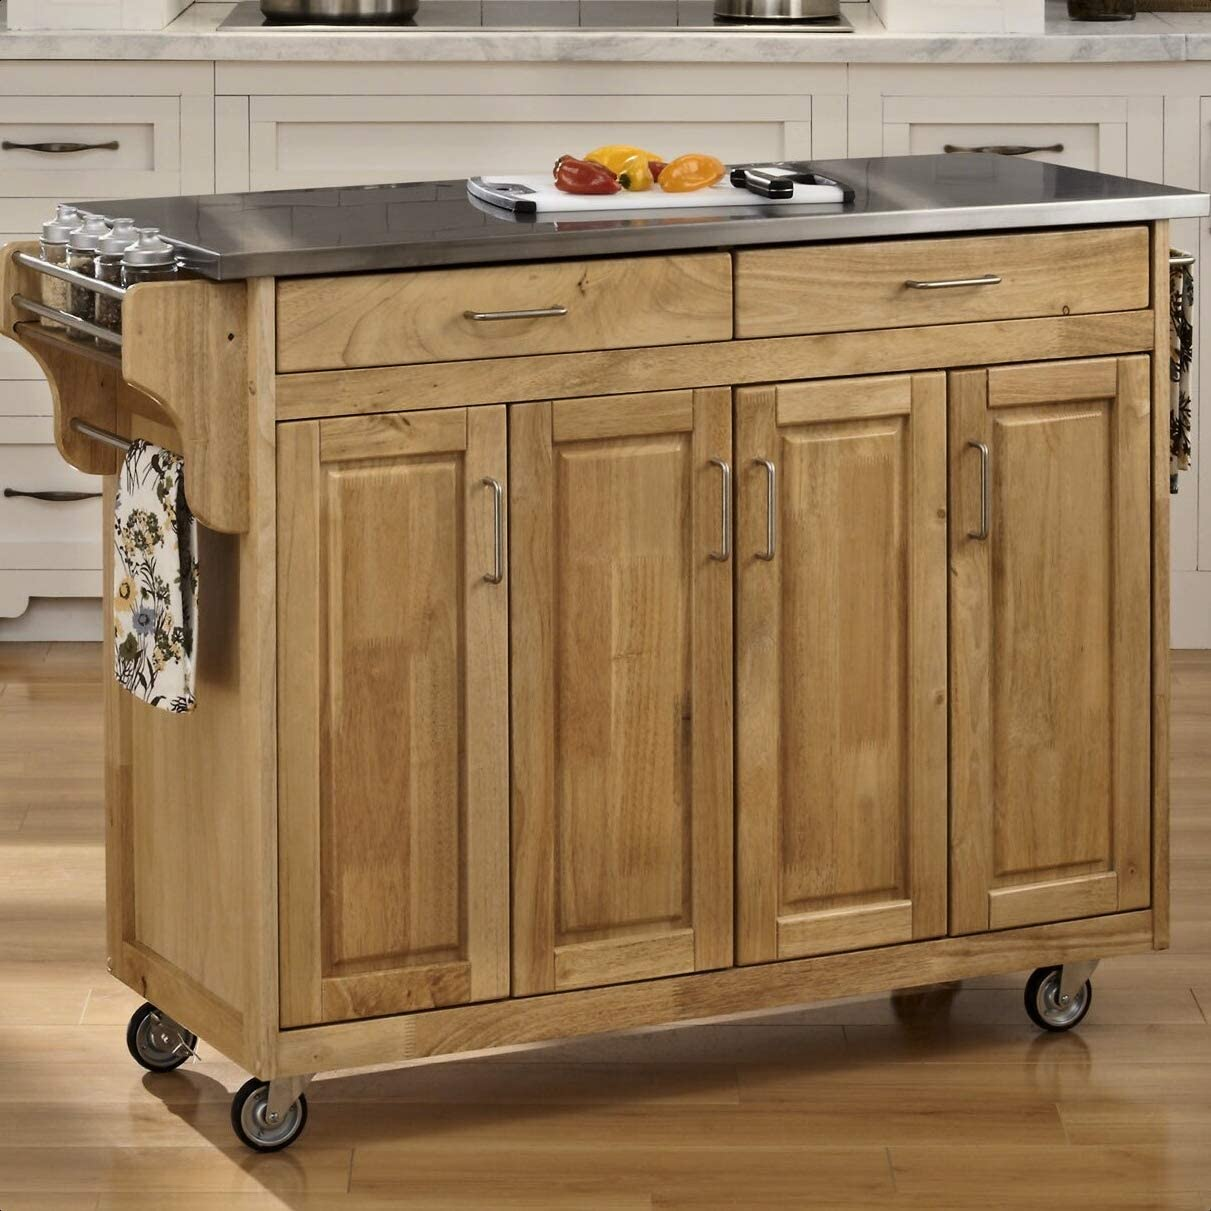 Regiene Kitchen Island Today's only with Stainless Interio In a popularity Top Steel Cabinet